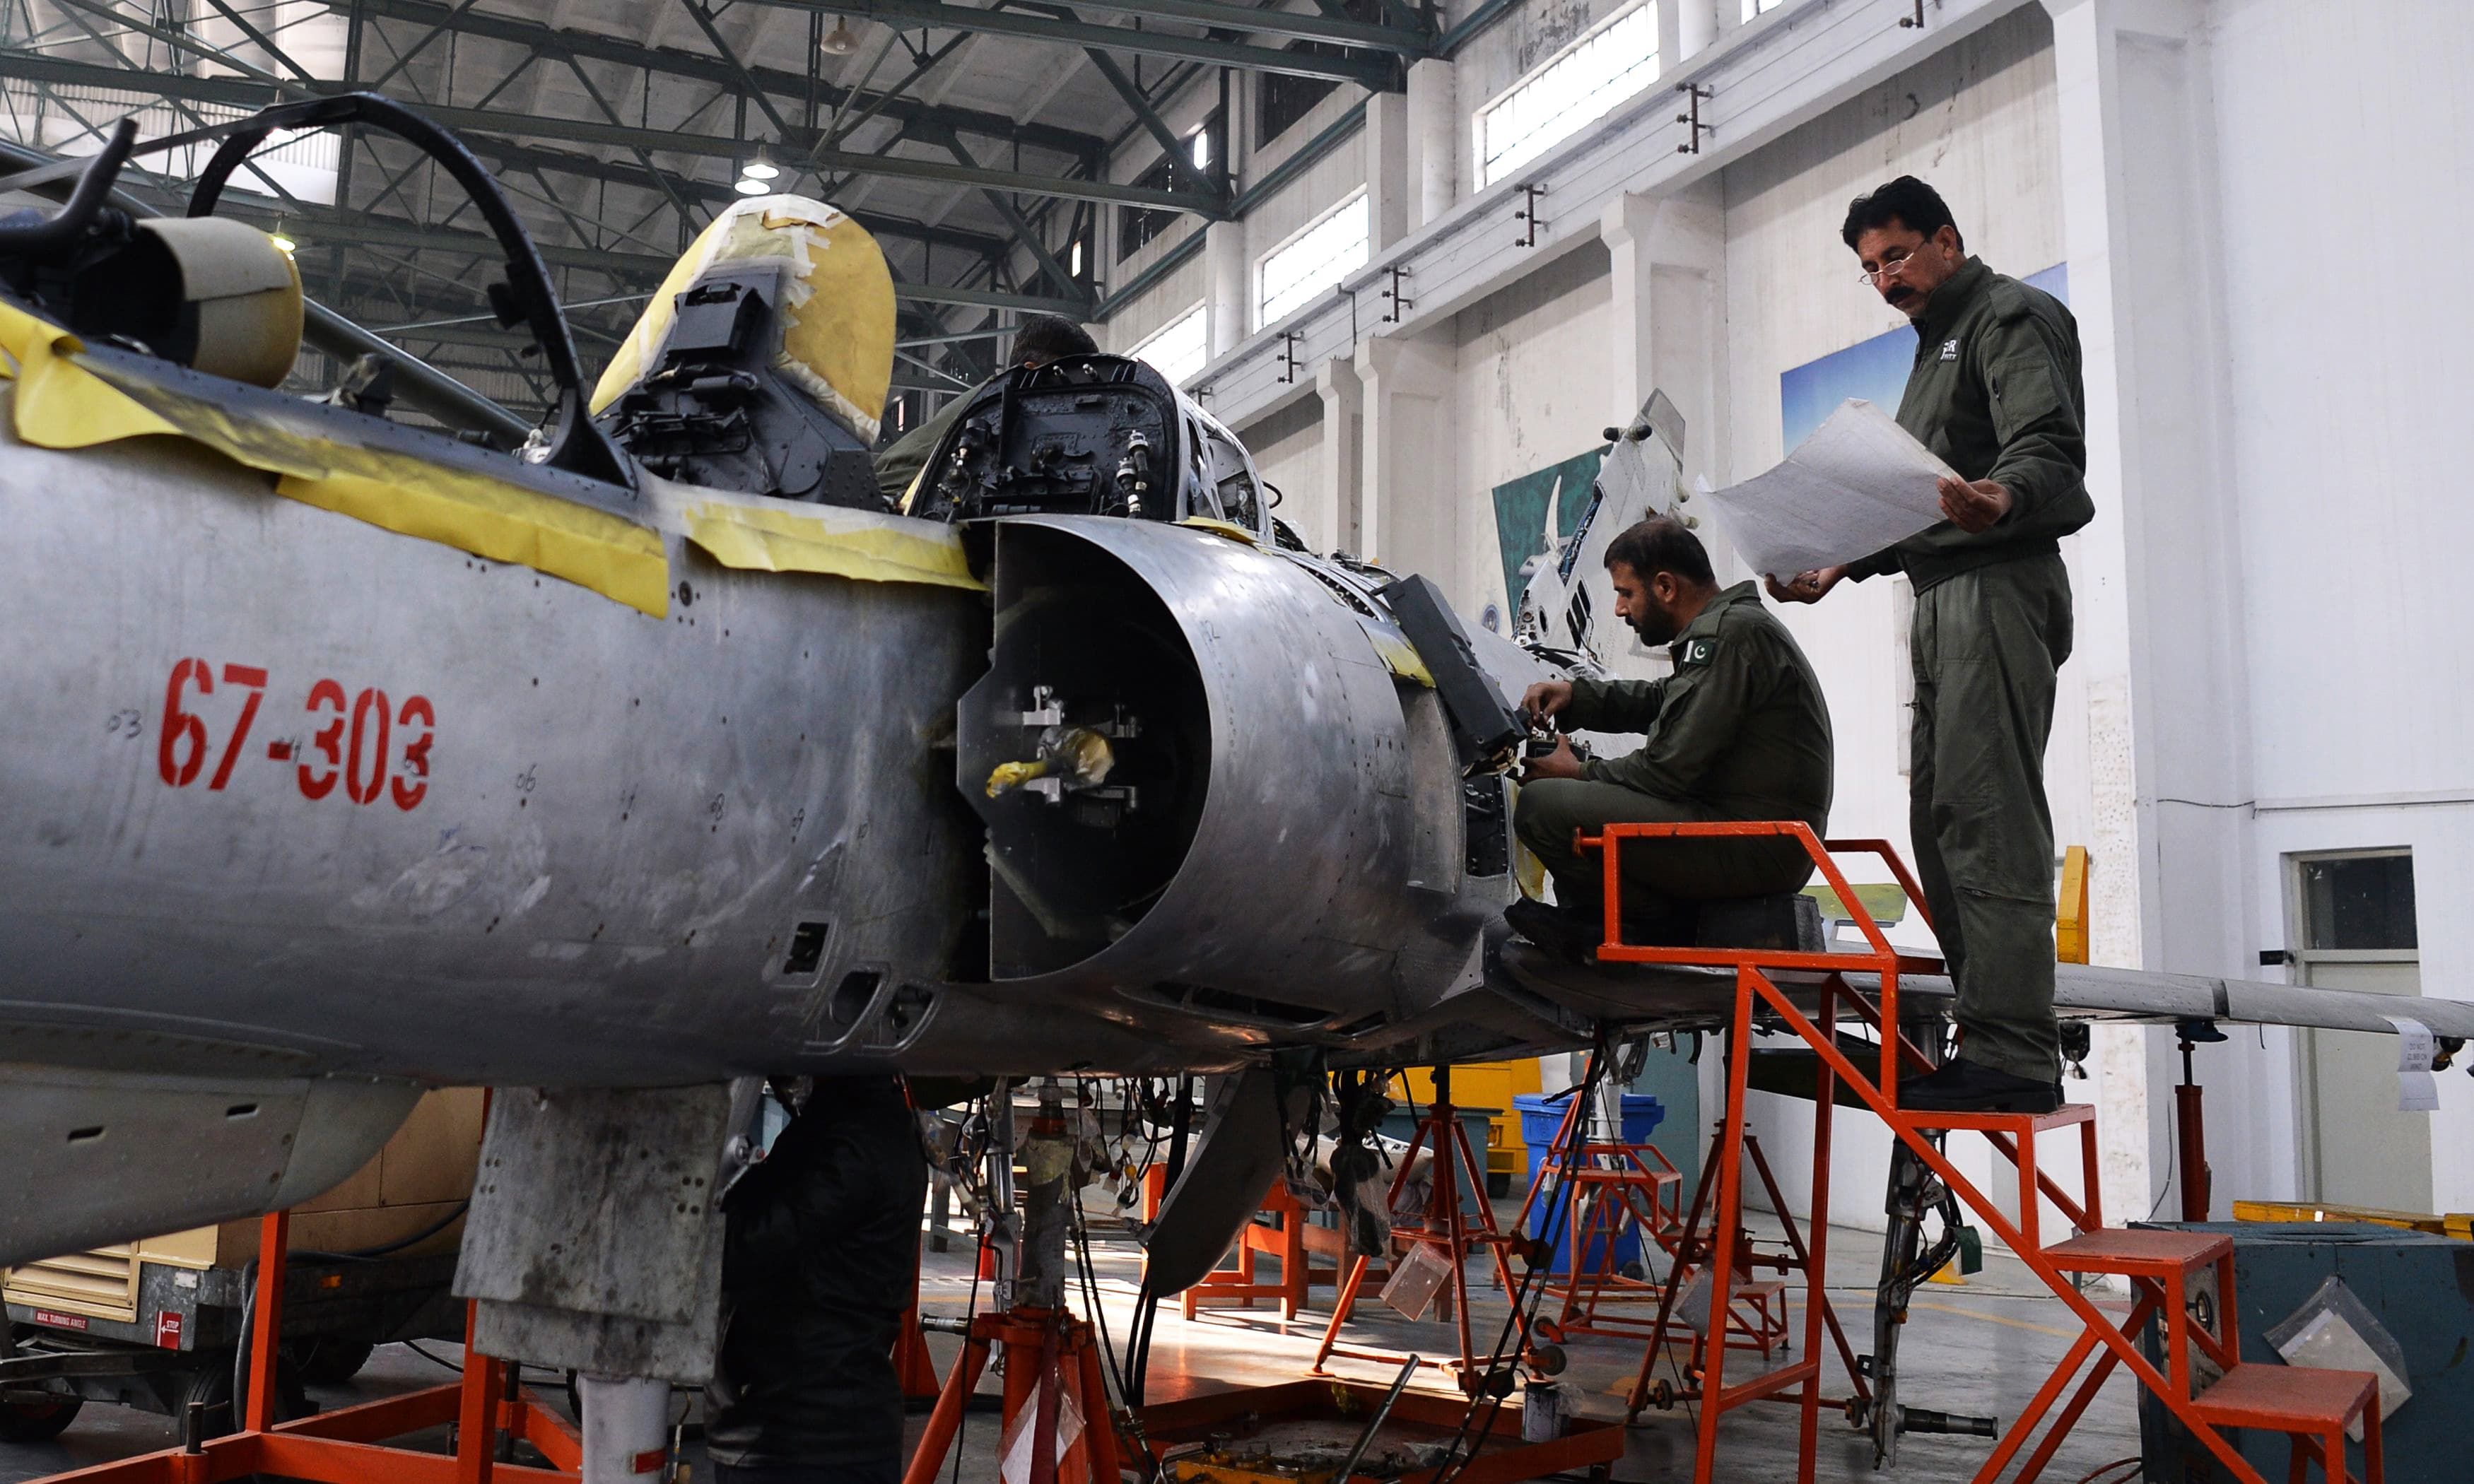 Technicians work on a Mirage aircraft during a full overhaul by the PAF. — AFP